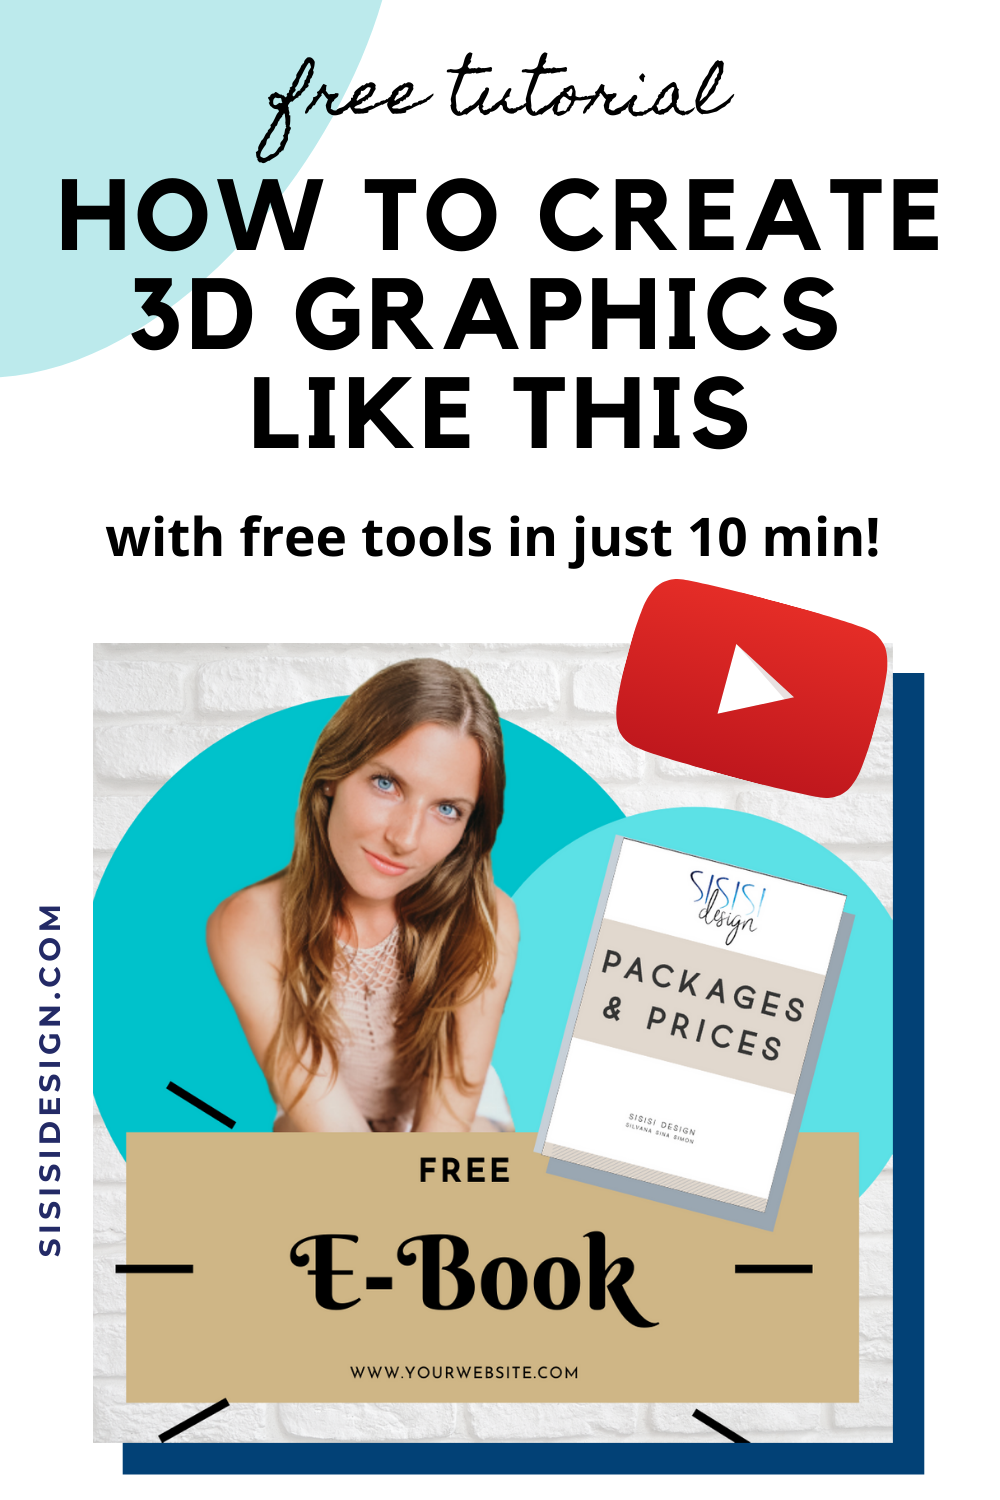 How to create 3D graphics for your marketing